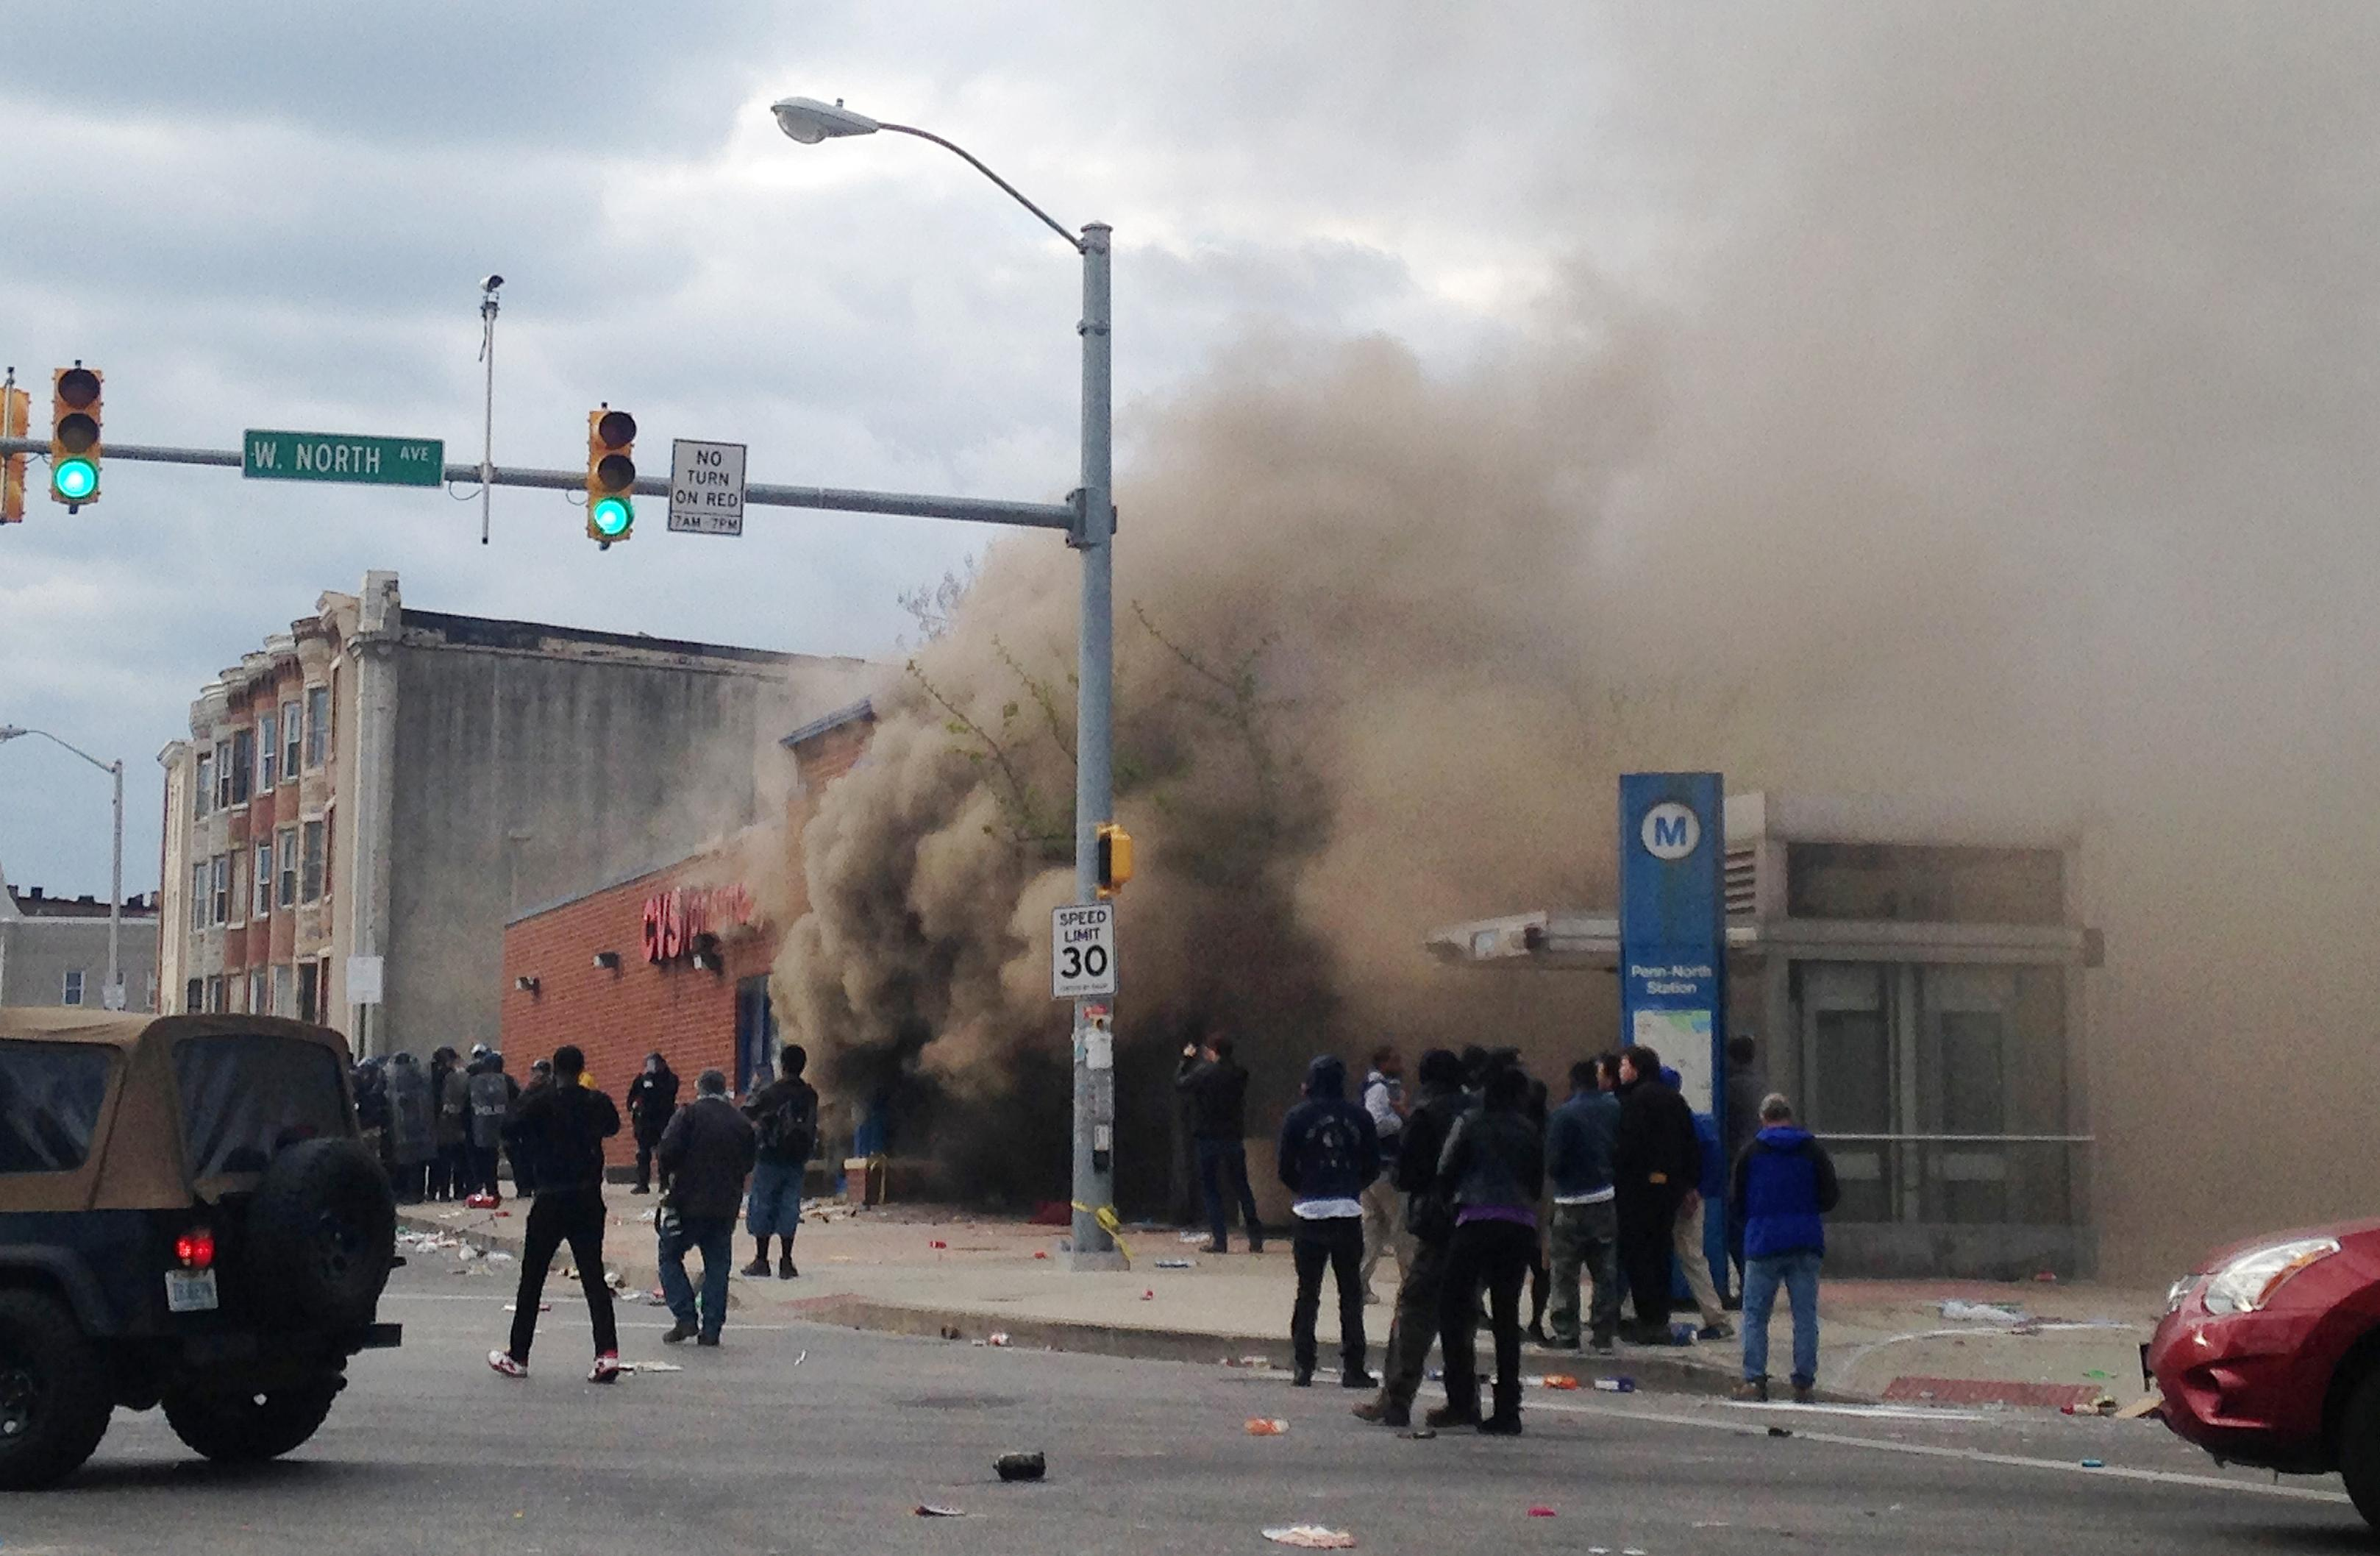 raymon carter man accused of setting fire to cvs during baltimore raymon carter man accused of setting fire to cvs during baltimore riot pleads guilty washington times